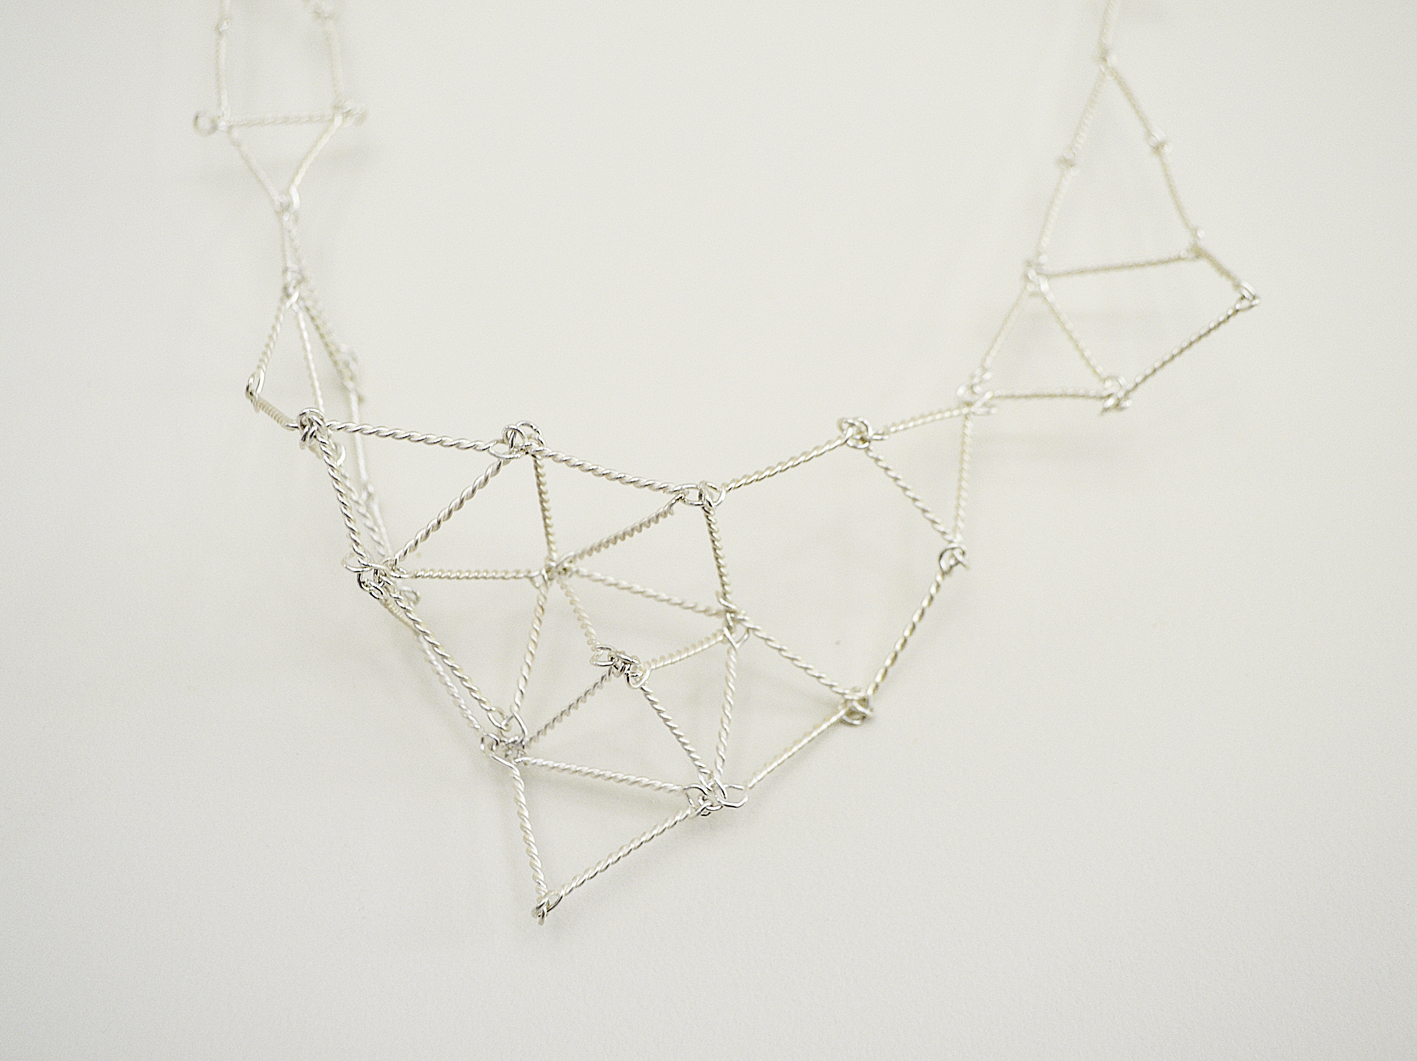 Cosmic Net necklace detail